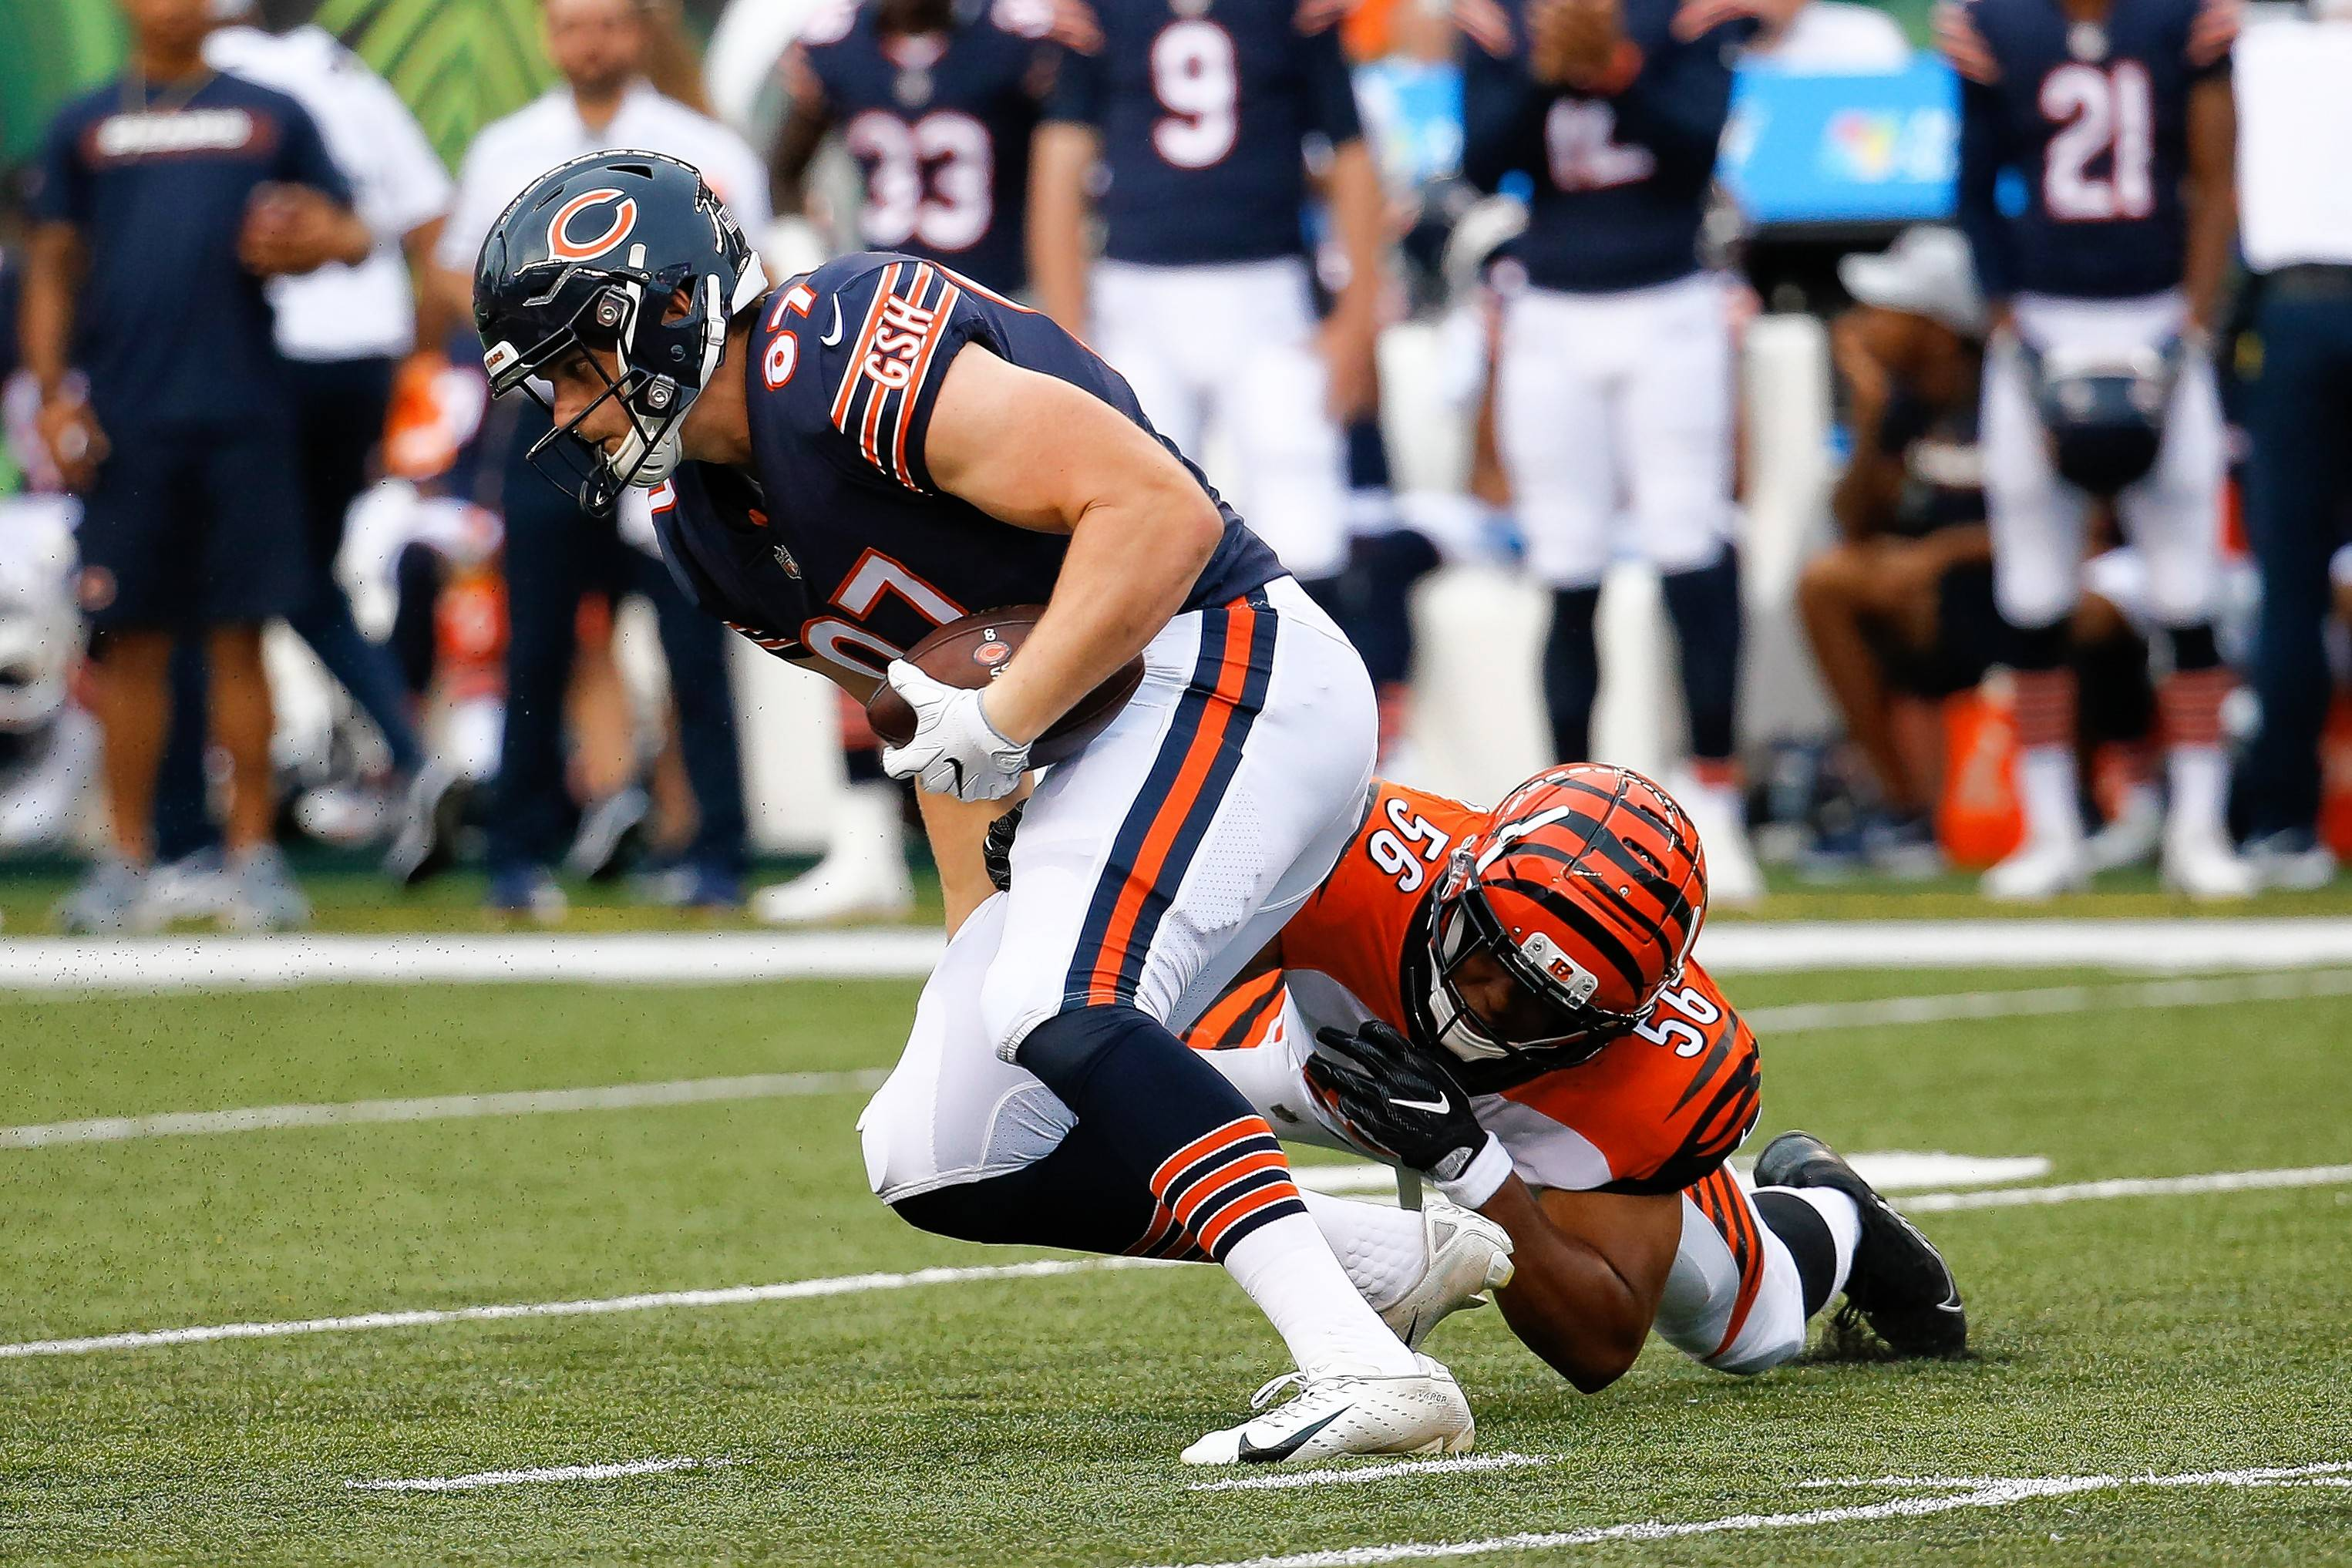 Adam Shaheen looked like the guy the Bears thought they were getting in the second round last year, finding open spots in the middle of the field, showing soft hands and good run-after-the-catch ability. After Chase Daniel replaced Mitch Trubisky late in the first quarter, he led a 72-yard TD drive, utilizing the 6-foot-6, 270-pound Shaheen, who caught 3 passes for 53 yards on just three targets during the march.